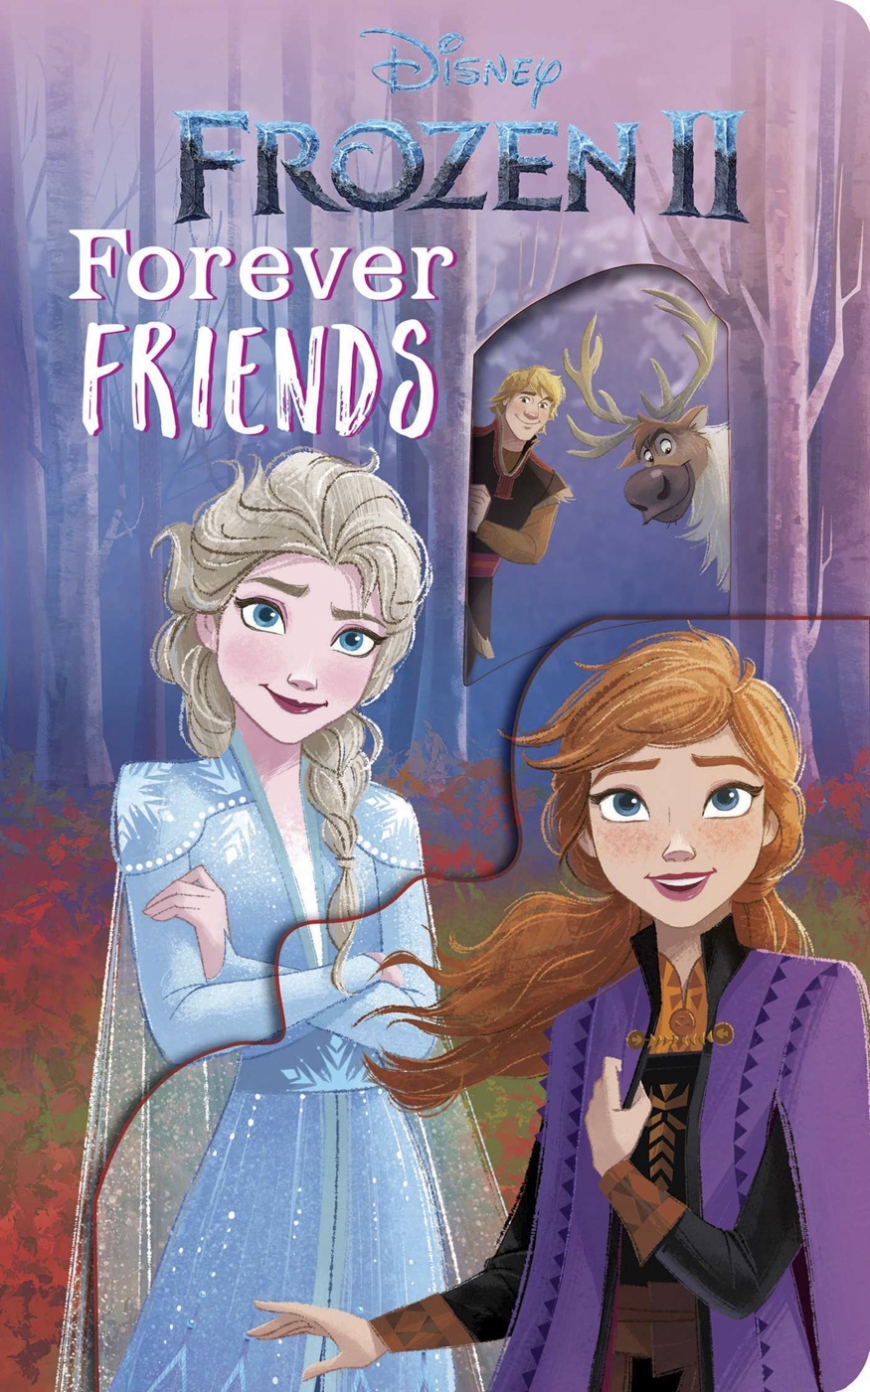 Frozen 2: Forever Friends Deluxe Guess Who book